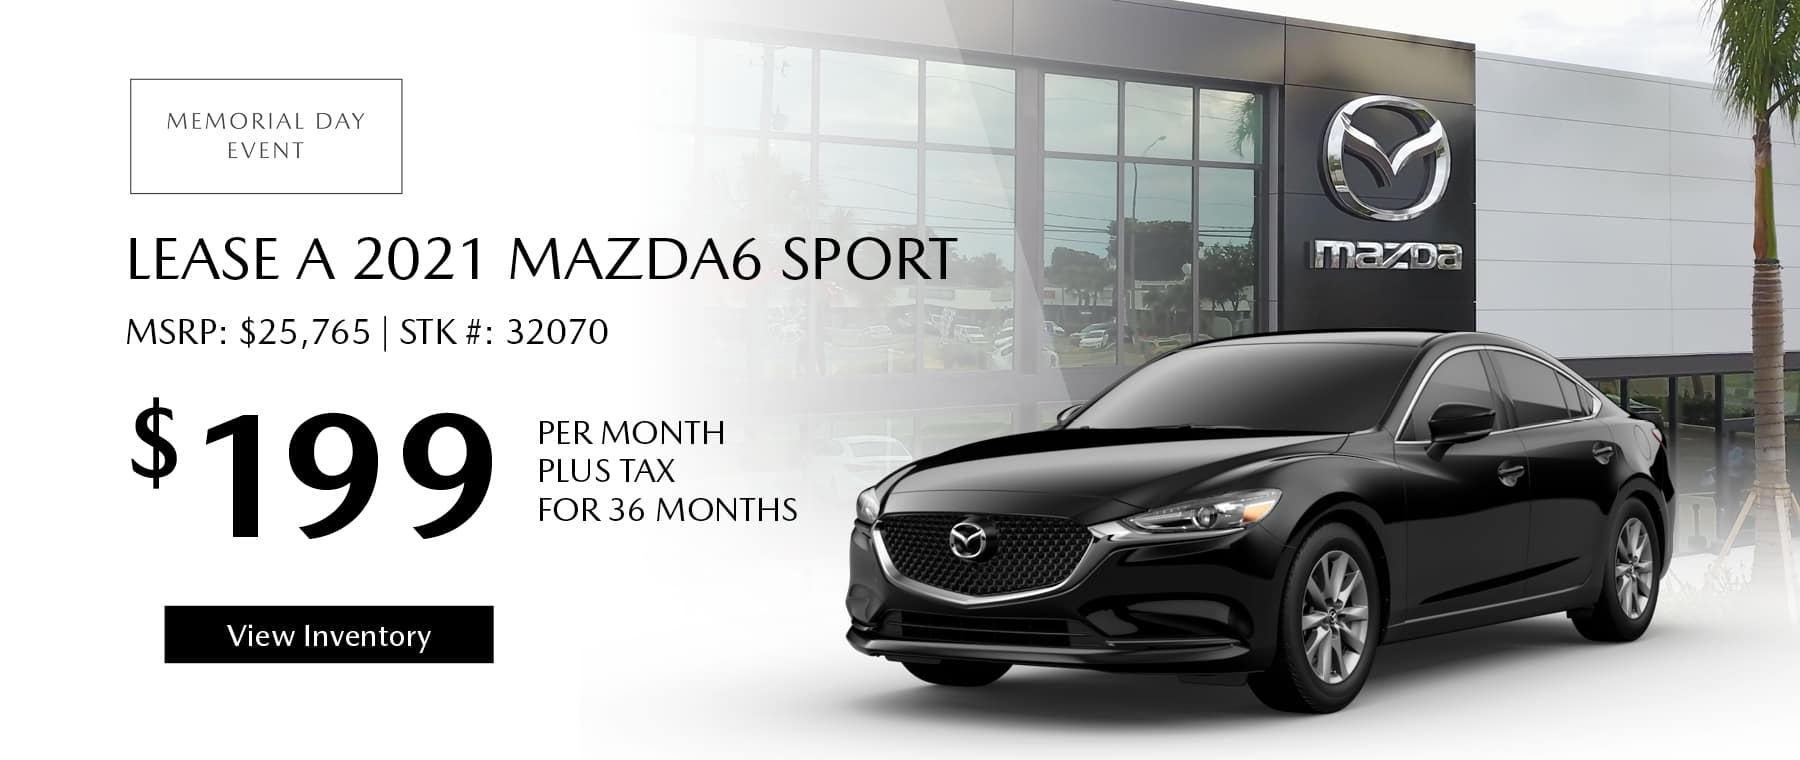 Lease the 2021 Mazda6 Sport for $199 per month, plus tax for 36 months. Click or tap here to view our inventory.